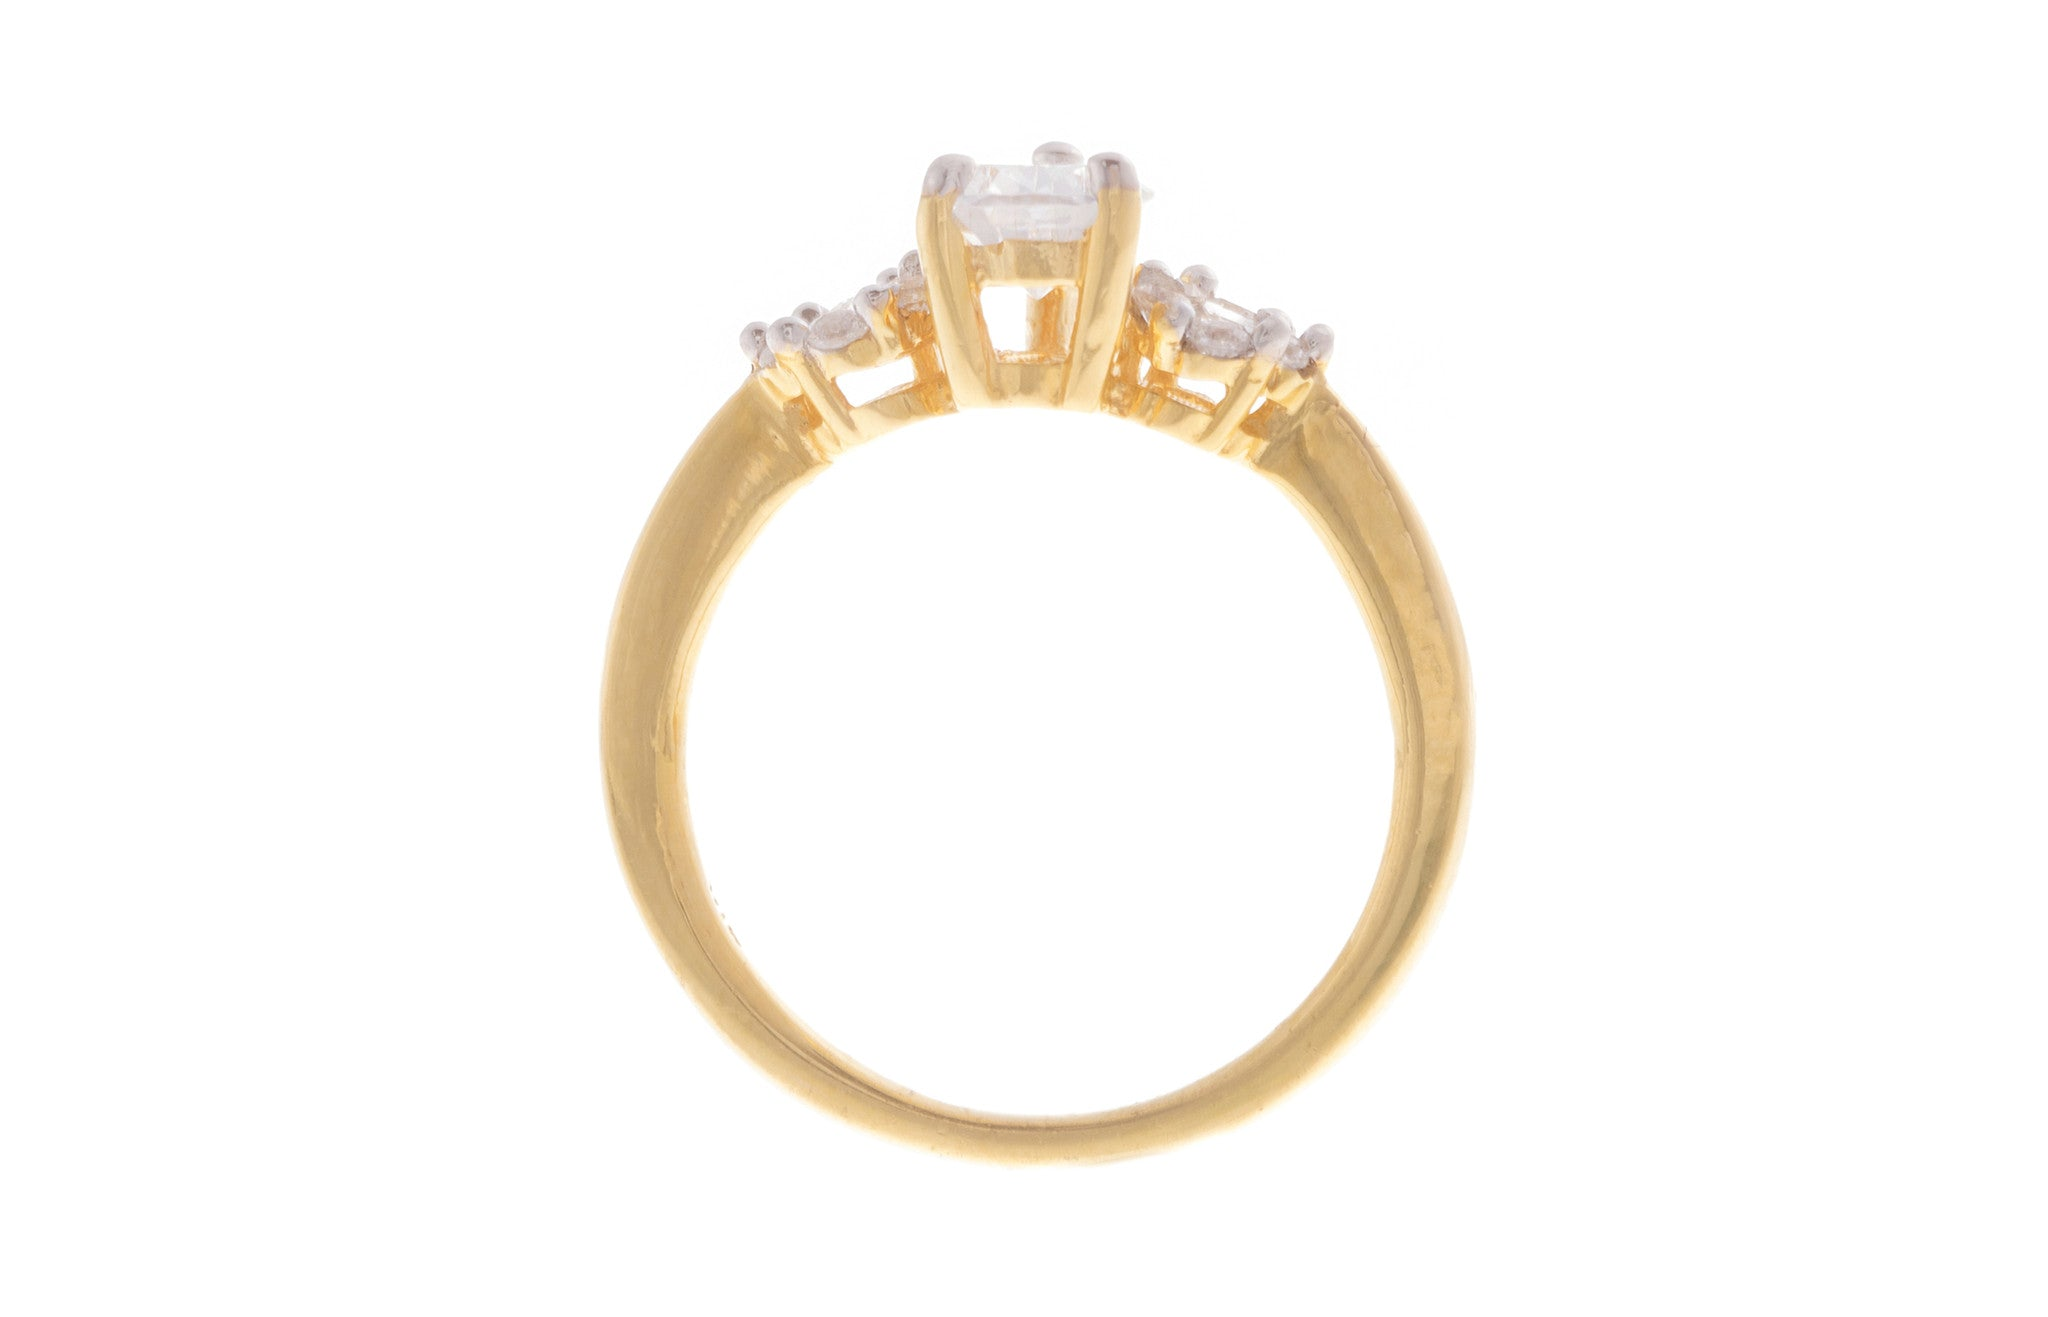 22ct Yellow Gold Cubic Zirconia Dress Ring, Minar Jewellers - 4